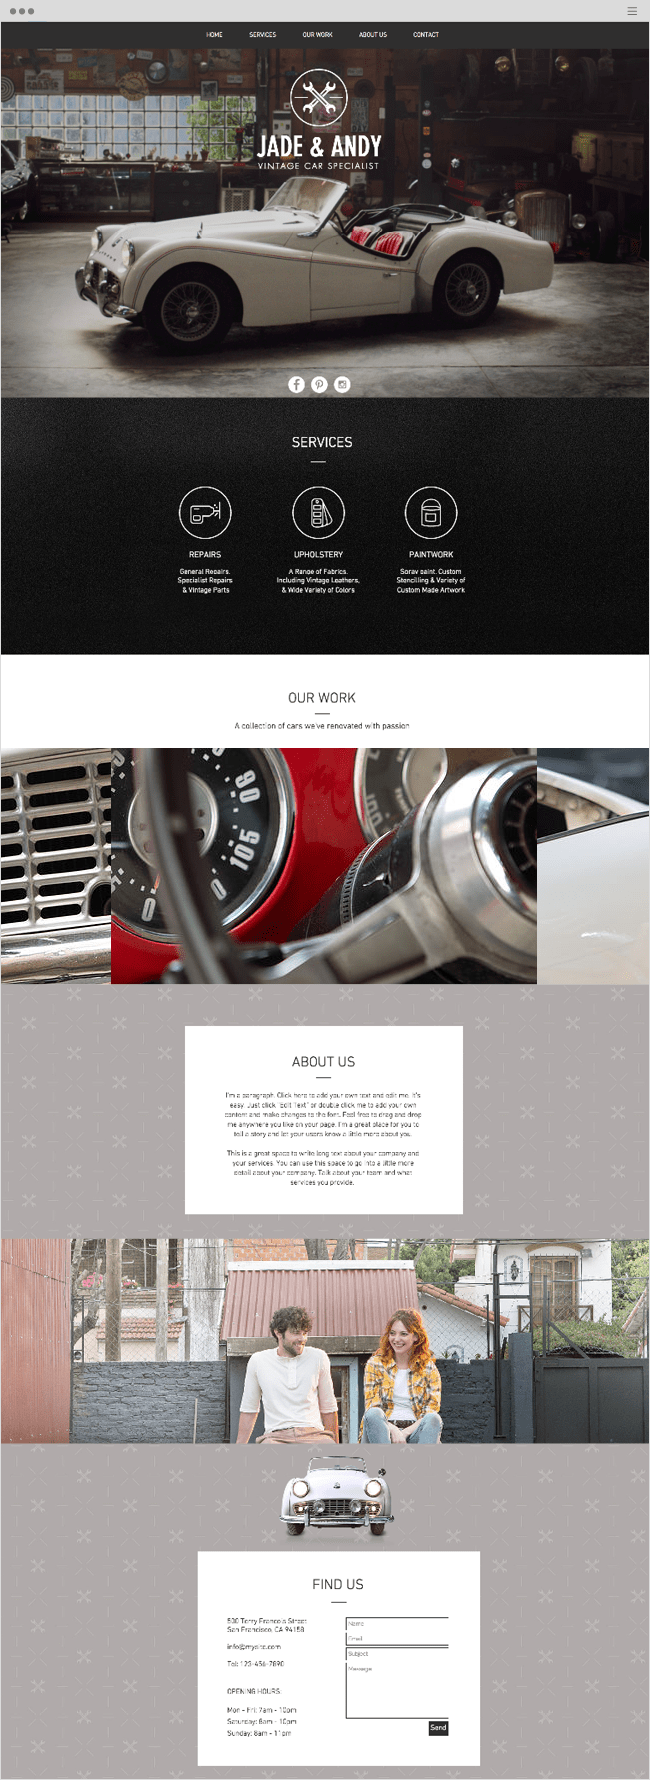 Vintage Car Garage Wix Website Template